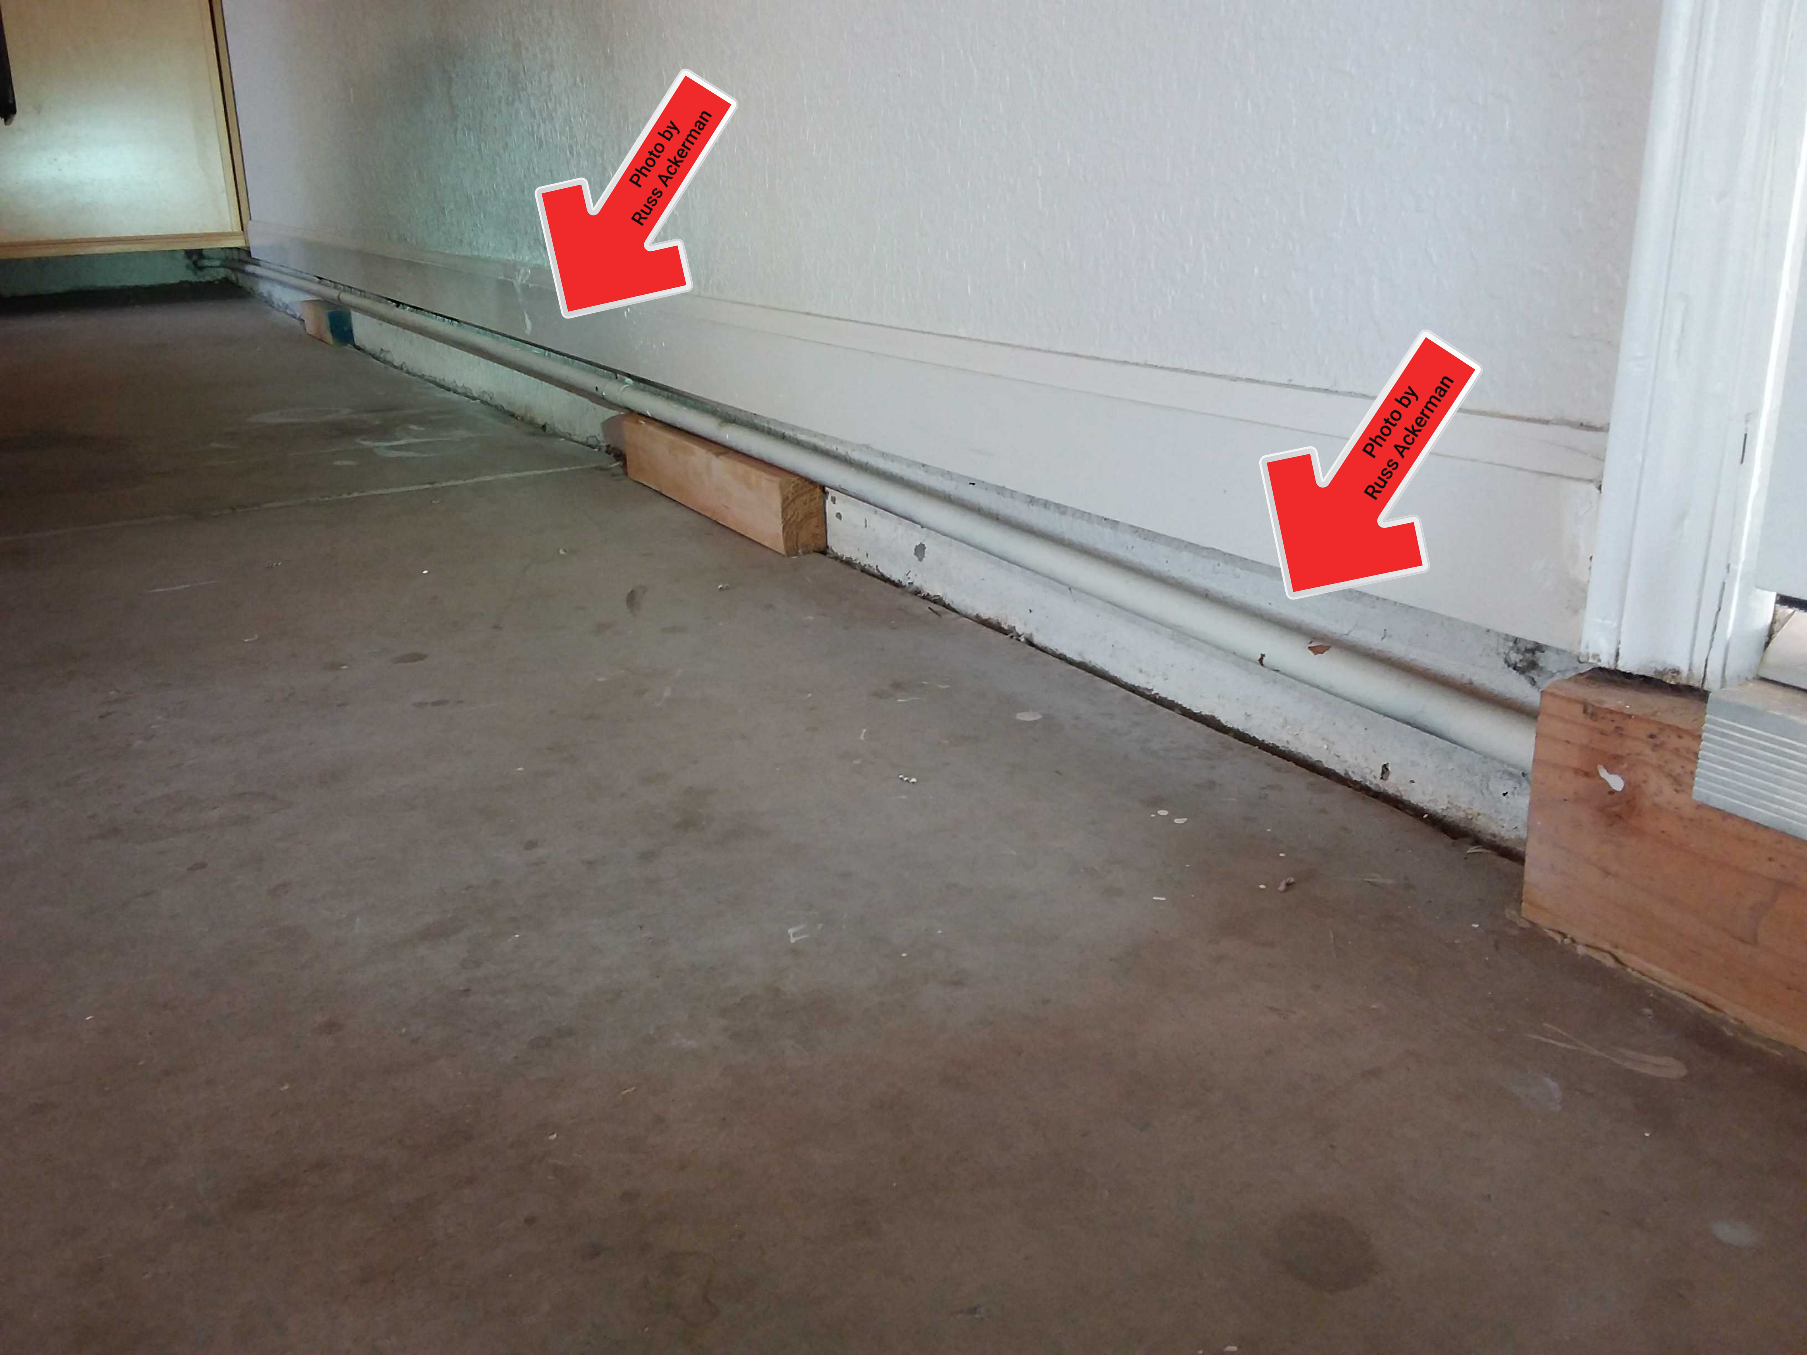 These water supply pipes in the garage are in need of additional support to reduce stress on pipes. Unsecured blocks of wood are not sufficient.